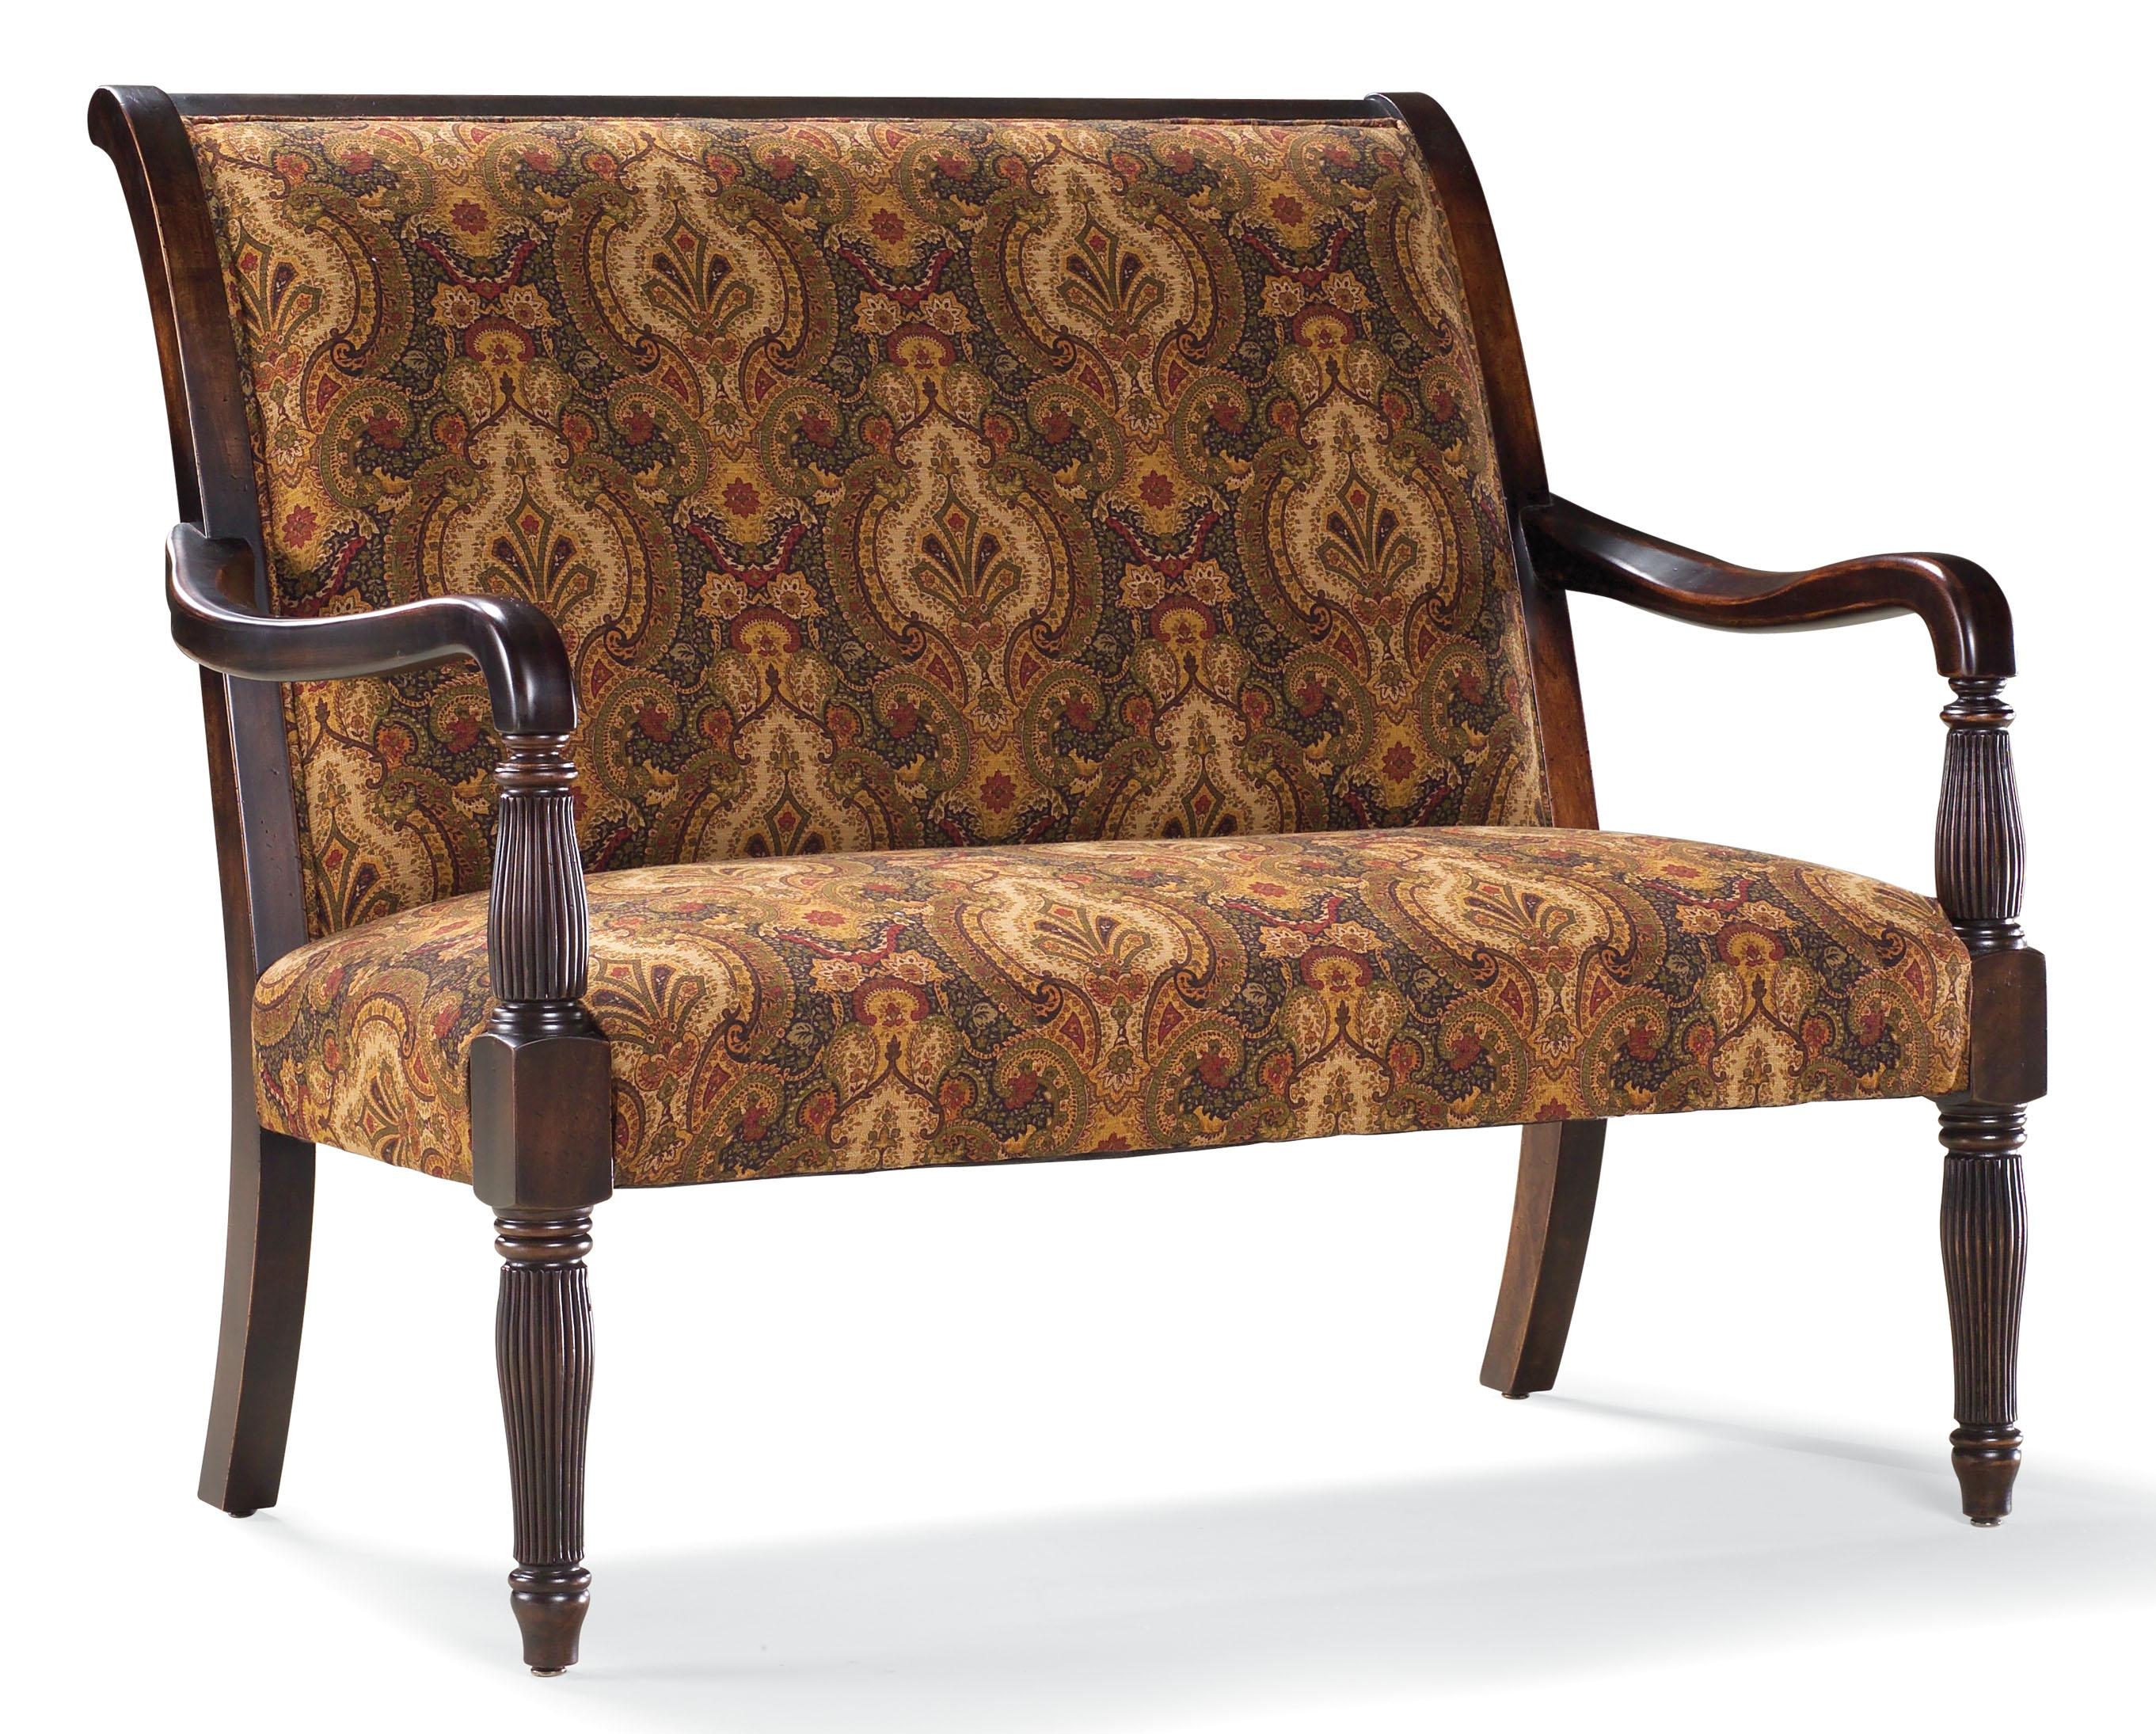 Fairfield sofa accents traditional stationary settee with for Timber frame accents